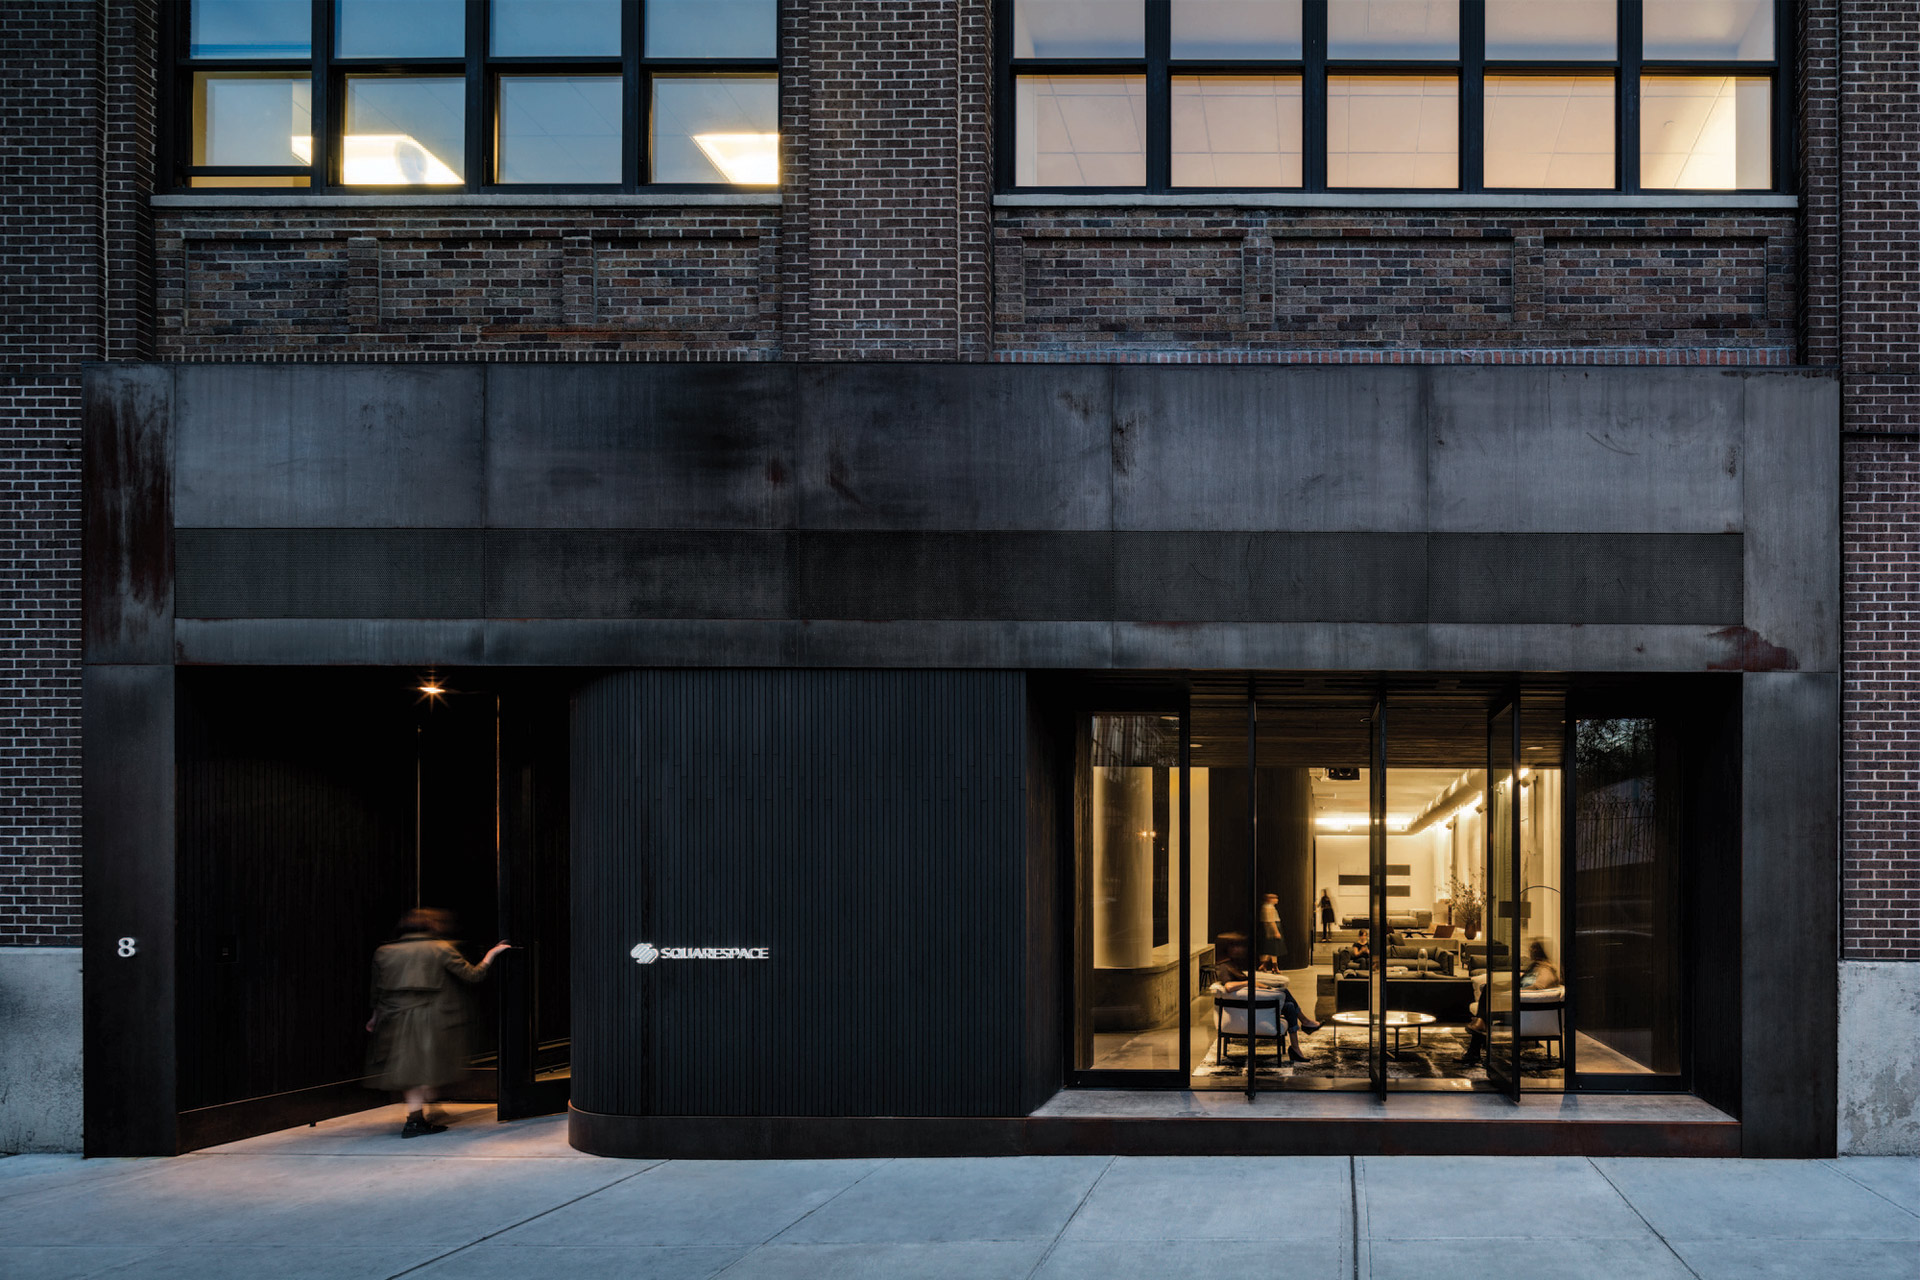 Squarespace Offices